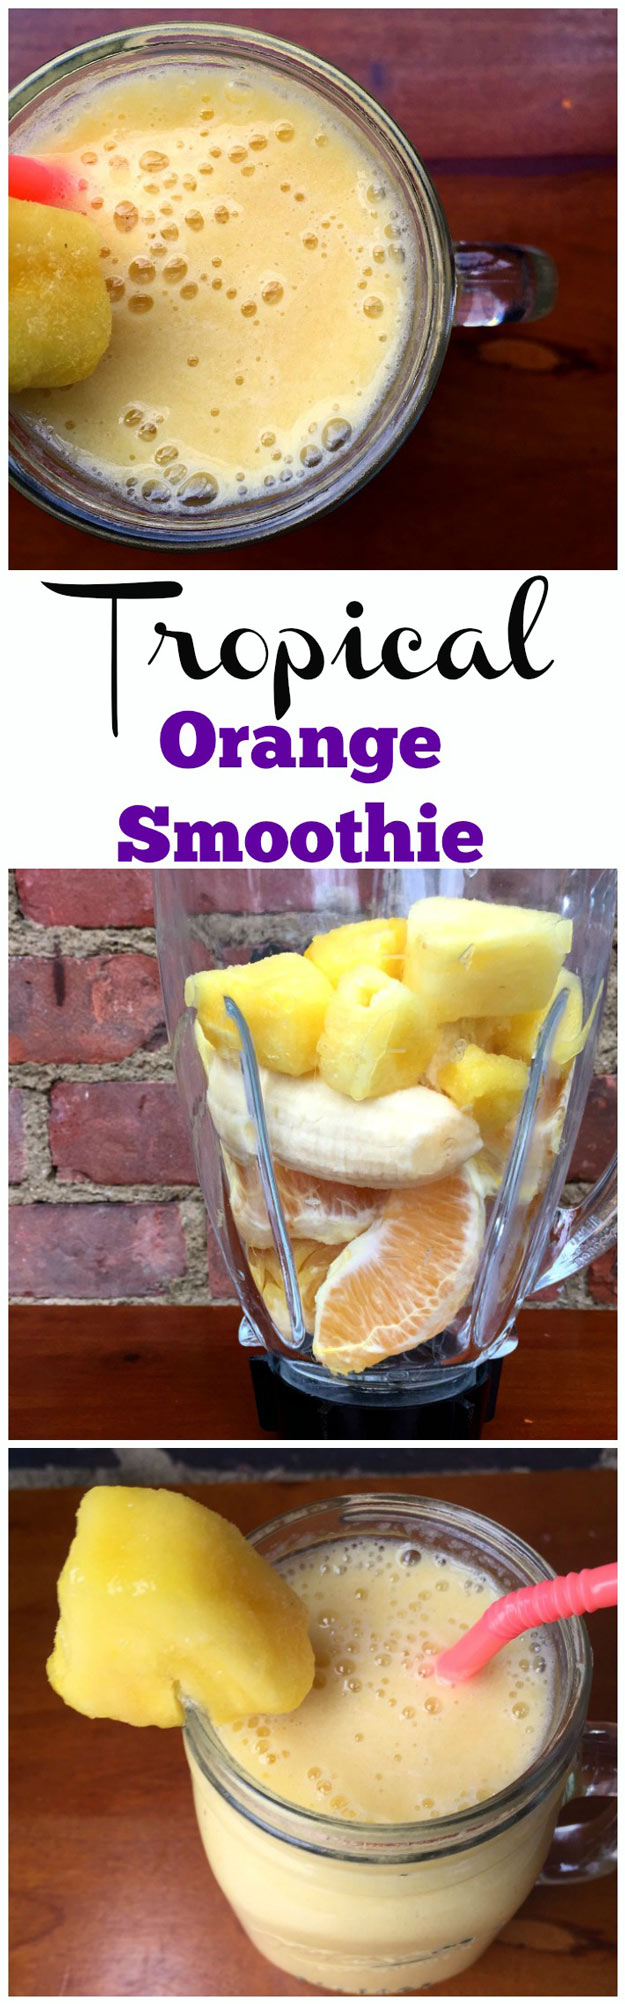 HealthyHealthy smoothie recipes and easy ideas perfect for breakfast, energy. Low calorie and high protein recipes for weightloss and to lose weight. Simple homemade recipe ideas that kids love. | Easy Breezy Tropical Orange Smoothie #smoothies #recipess smoothie recipes and easy ideas perfect for breakfast, energy. Low calorie and high protein recipes for weightloss and to lose weight. Simple homemade recipe ideas that kids love. | Easy Breezy Tropical Orange Smoothie |